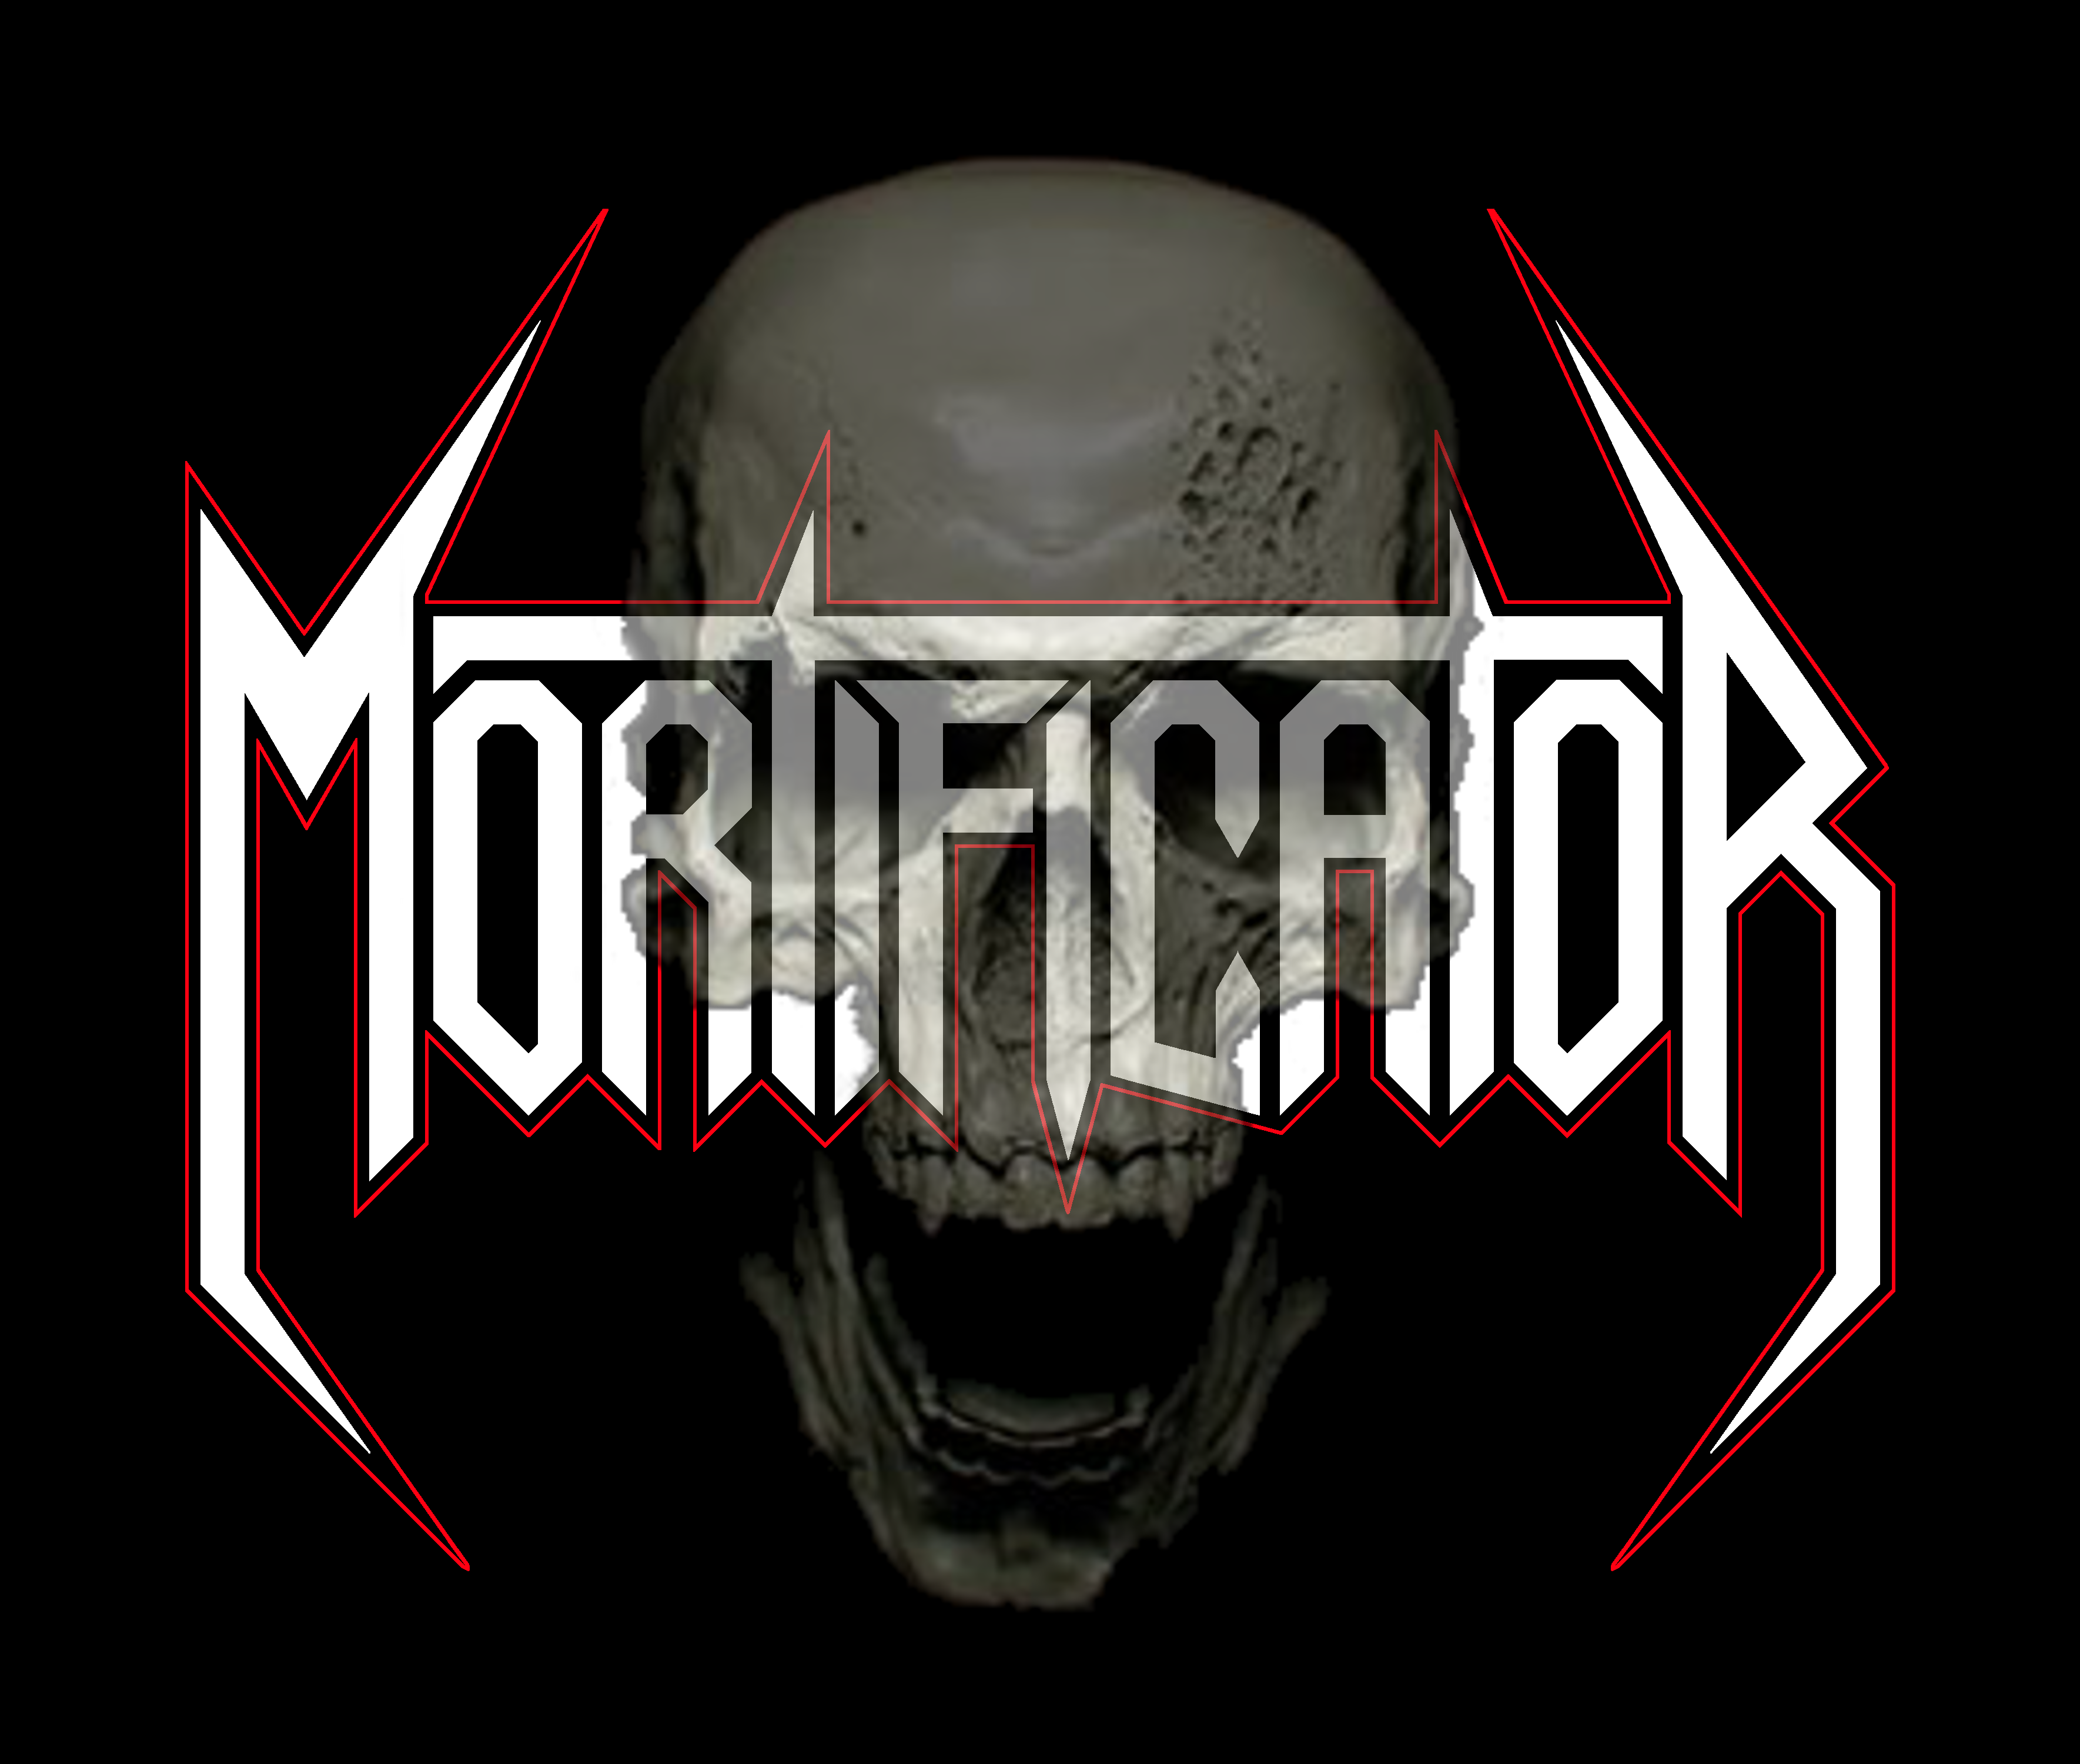 Mortificator